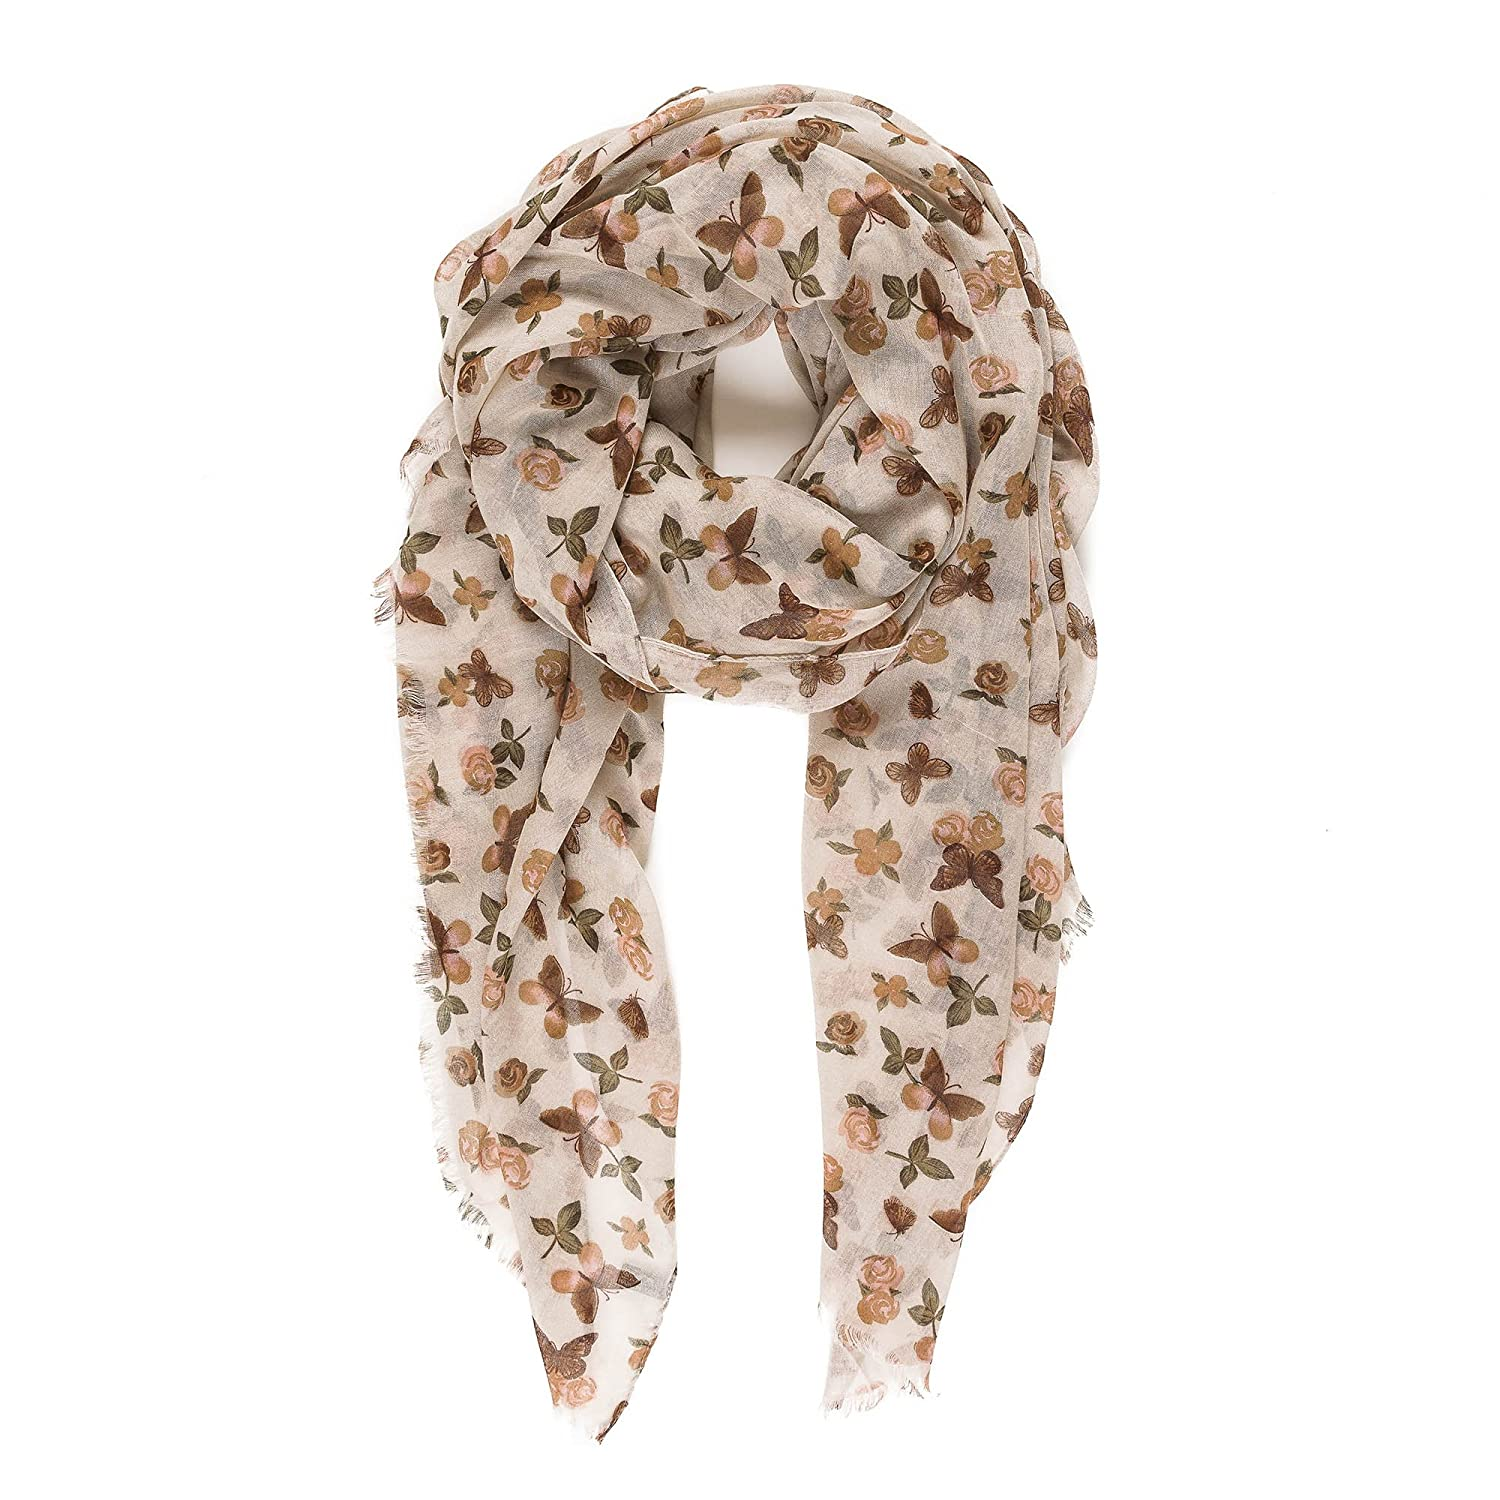 Scarf for Women Lightweight Butterfly Fashion Fall Winter Scarves Shawl Wraps Spanish Designer Collection